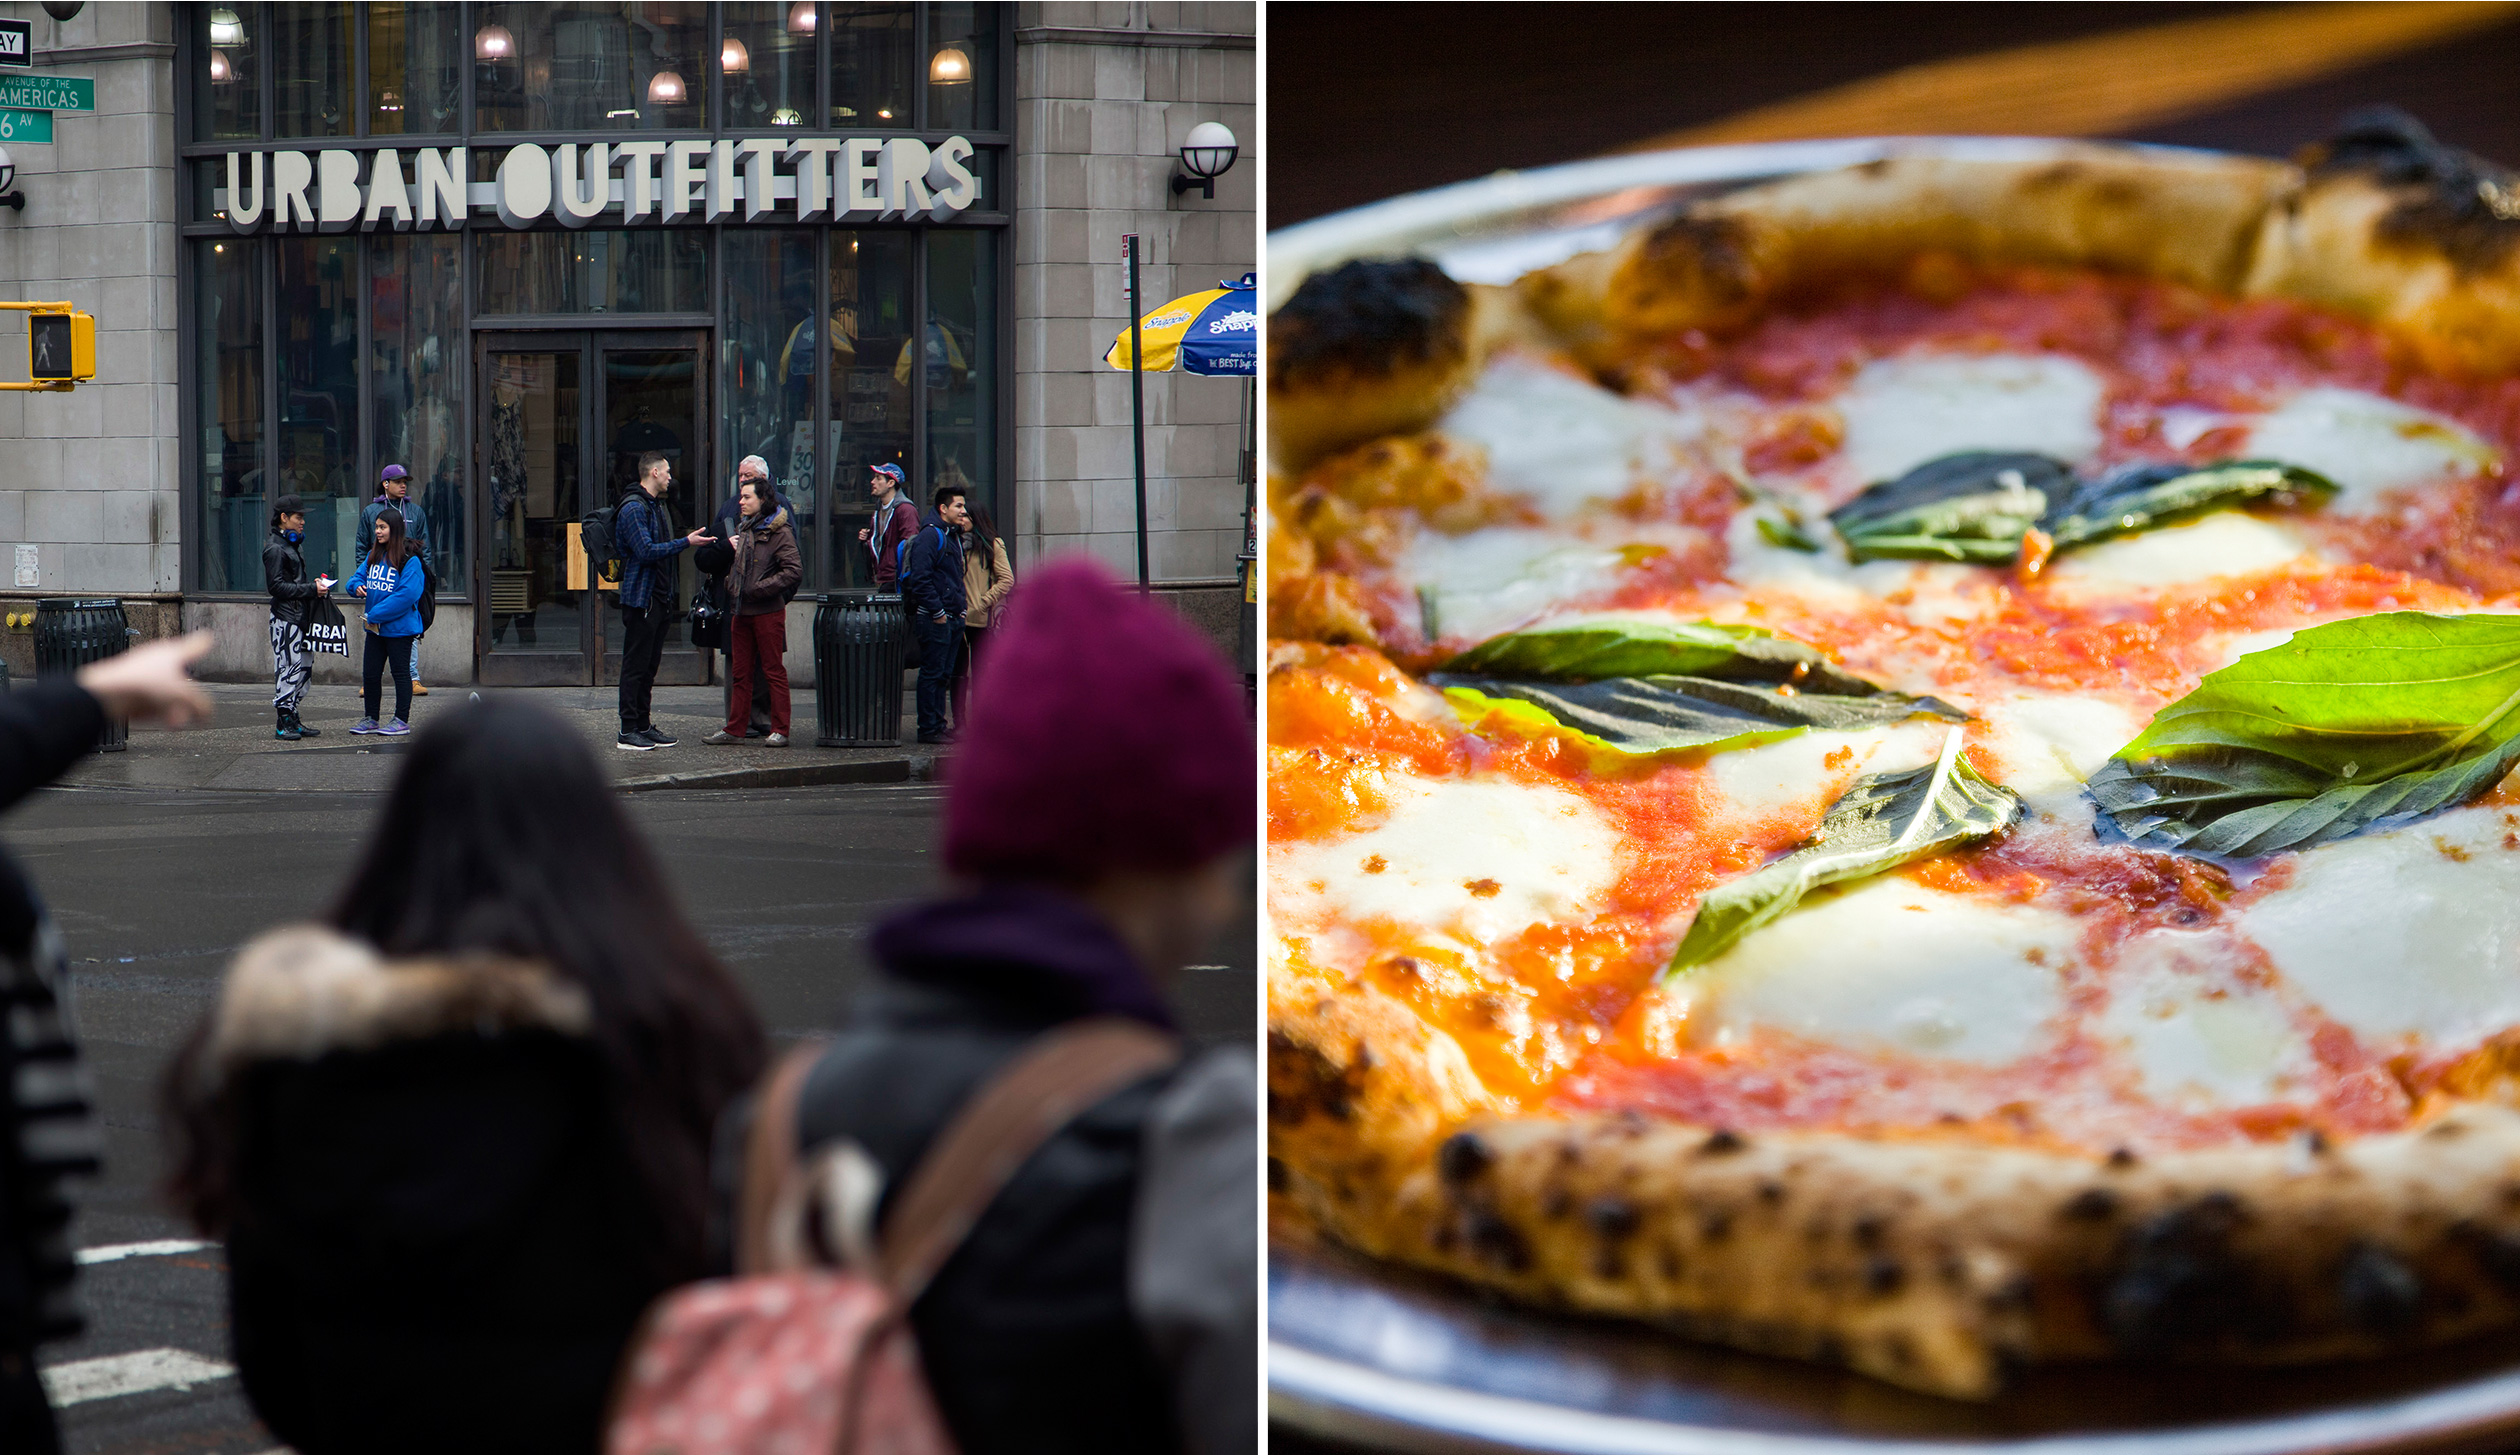 Pedestrians walk past an Urban Outfitters in New York, left and pizza from Pizzeria Vetri in Philadelphia.